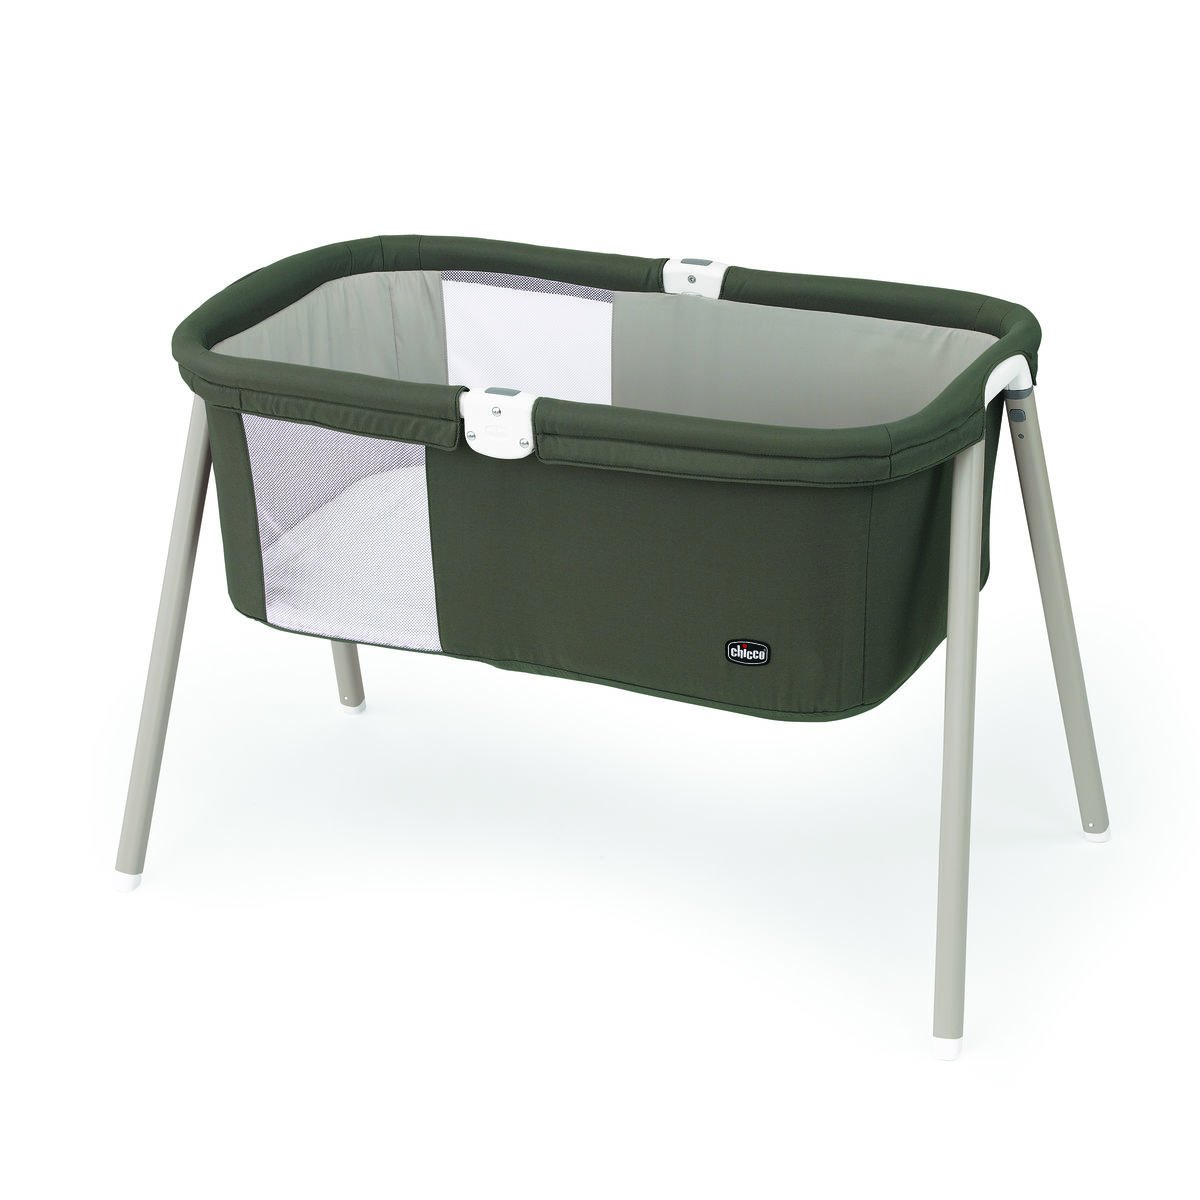 The Chicco Lullago Travel Crib